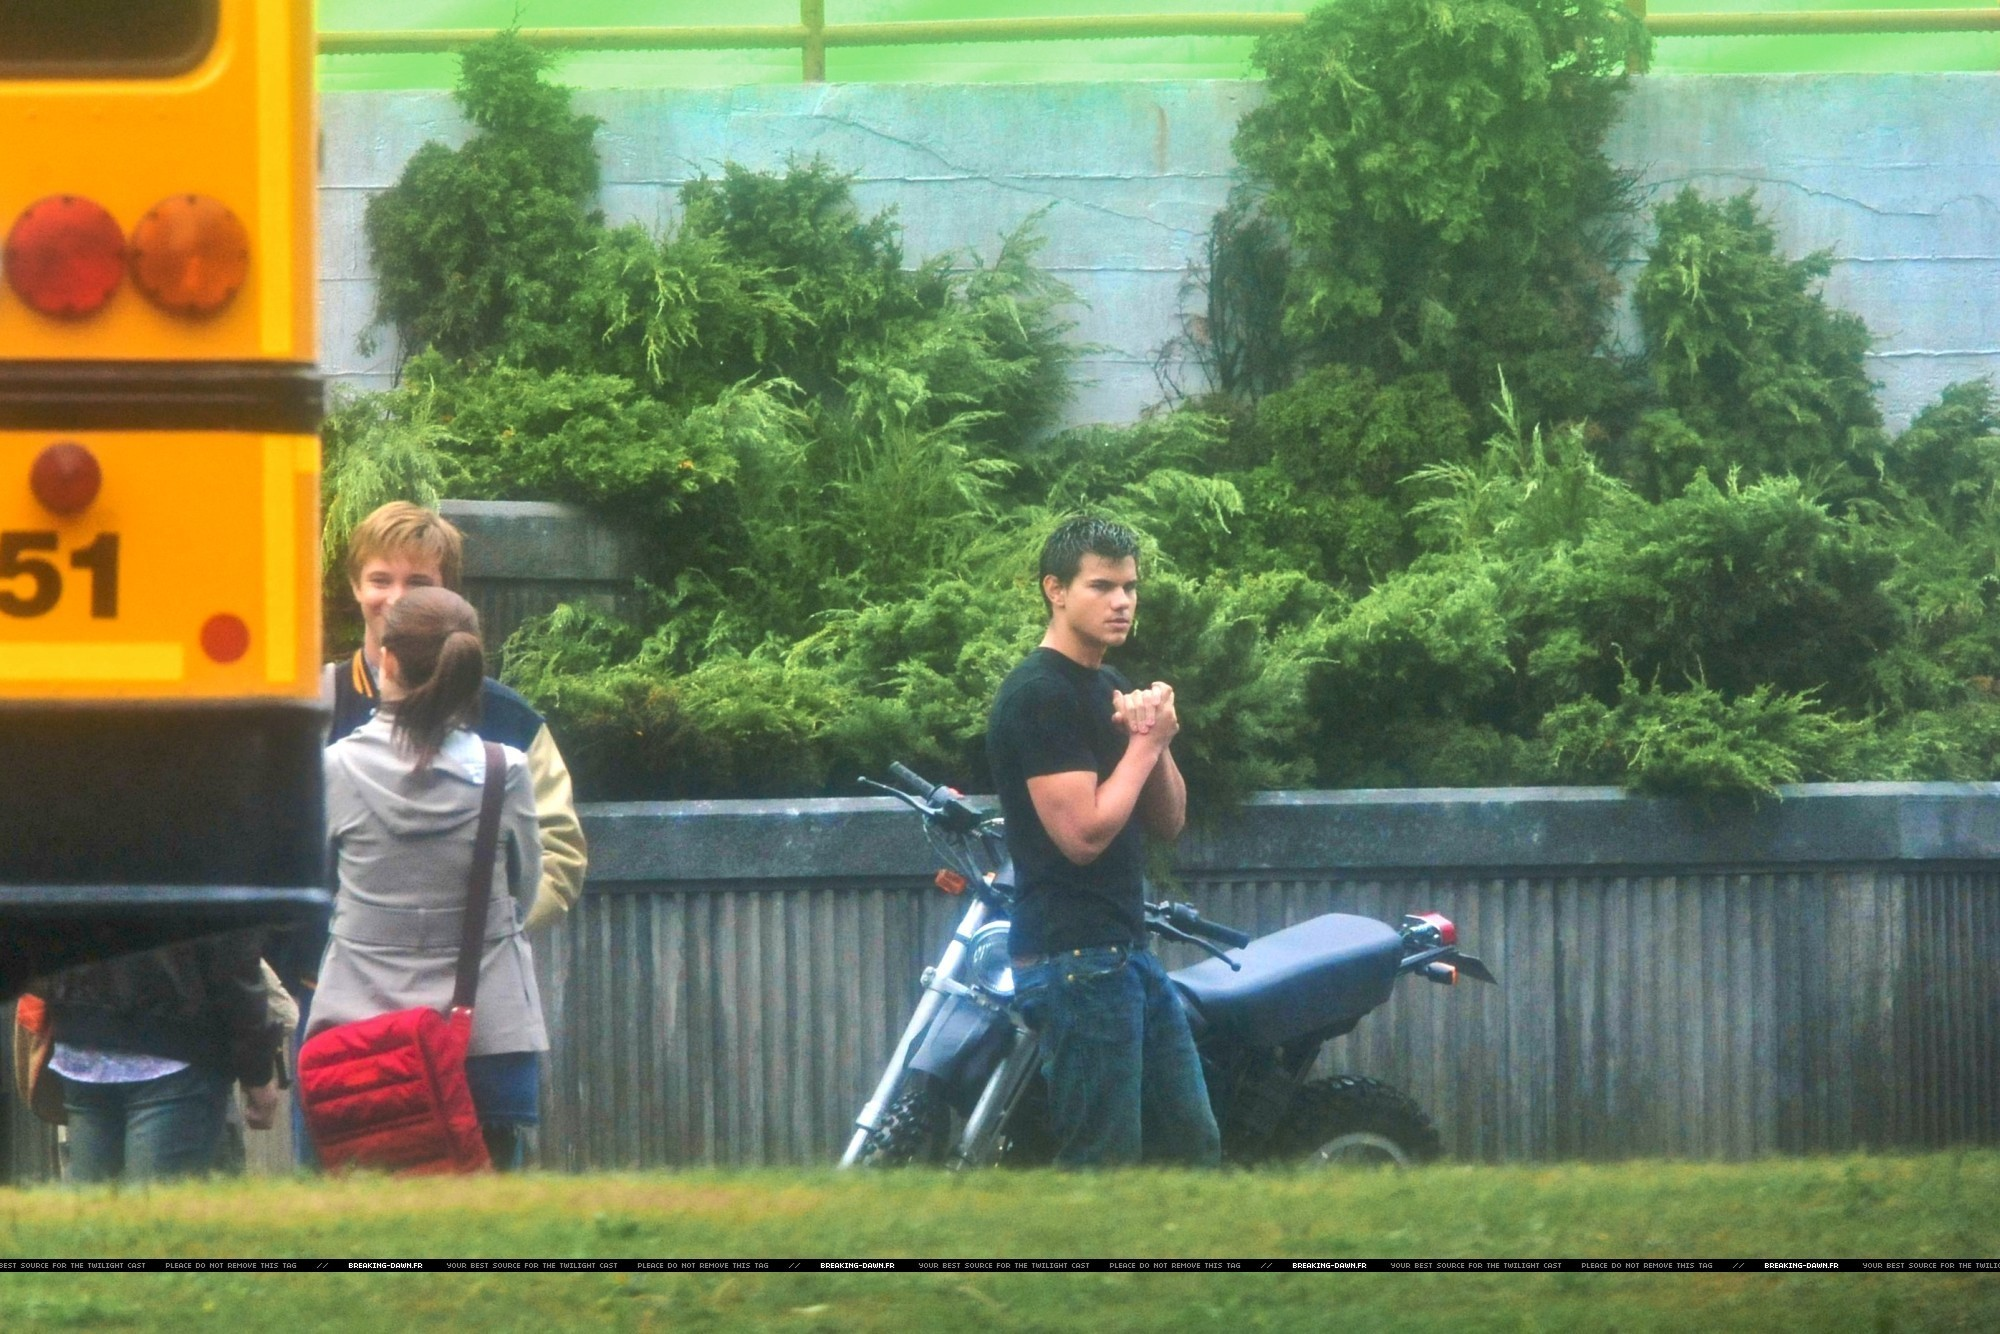 http://images2.fanpop.com/images/photos/8000000/Rob-kristen-taylor-on-the-set-of-Eclipse-yesterday-twilight-series-8080290-2000-1334.jpg